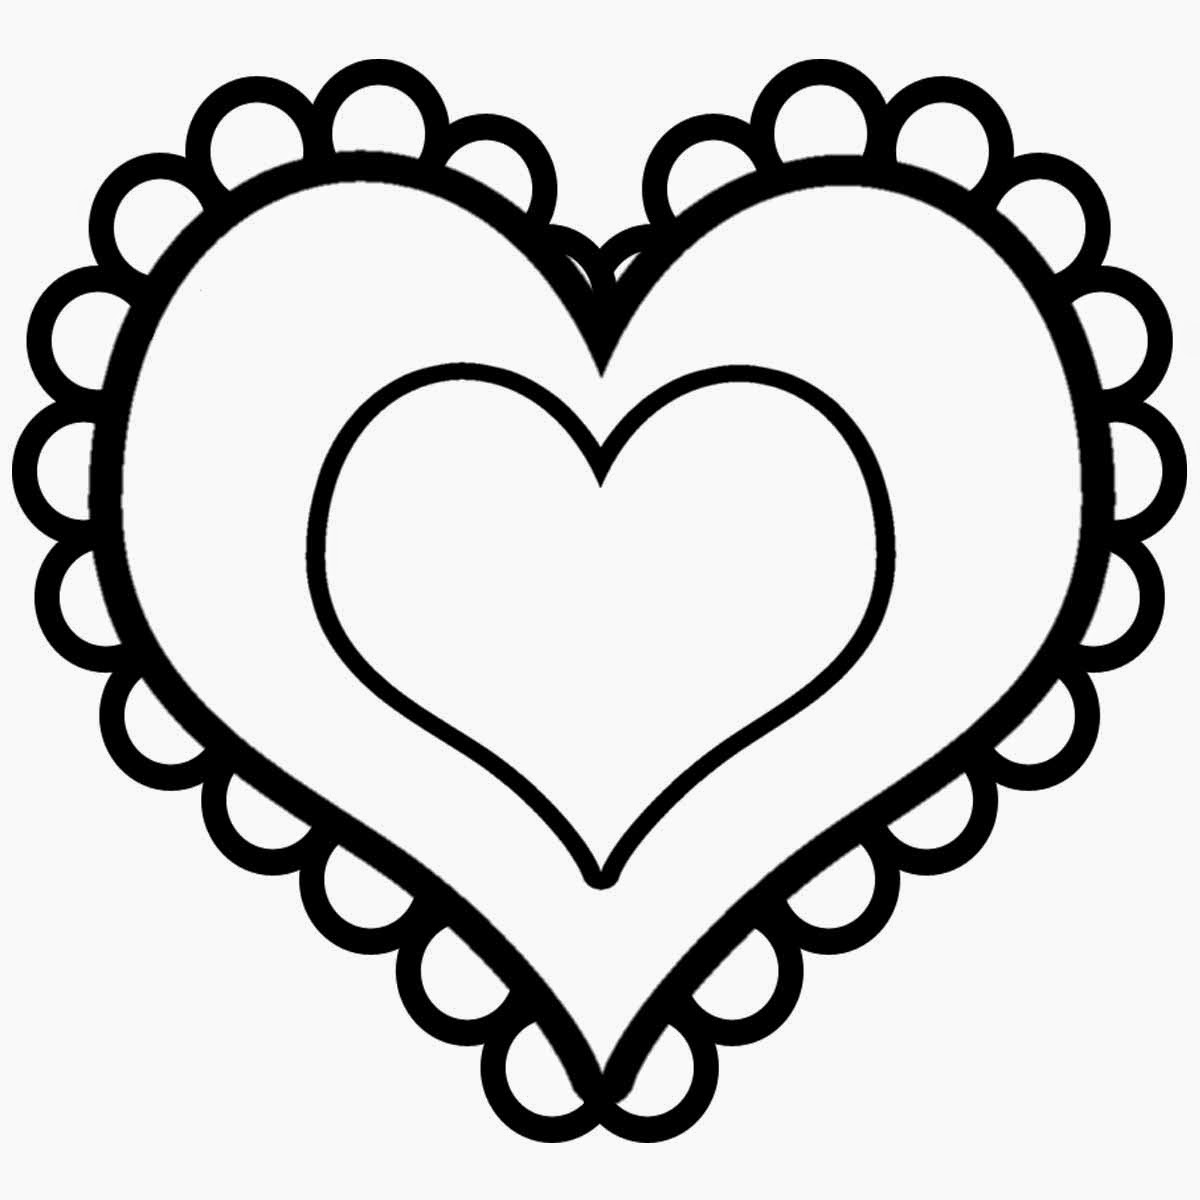 Coloring Pages Hearts Free Printable Coloring Pages For Valentine S Day